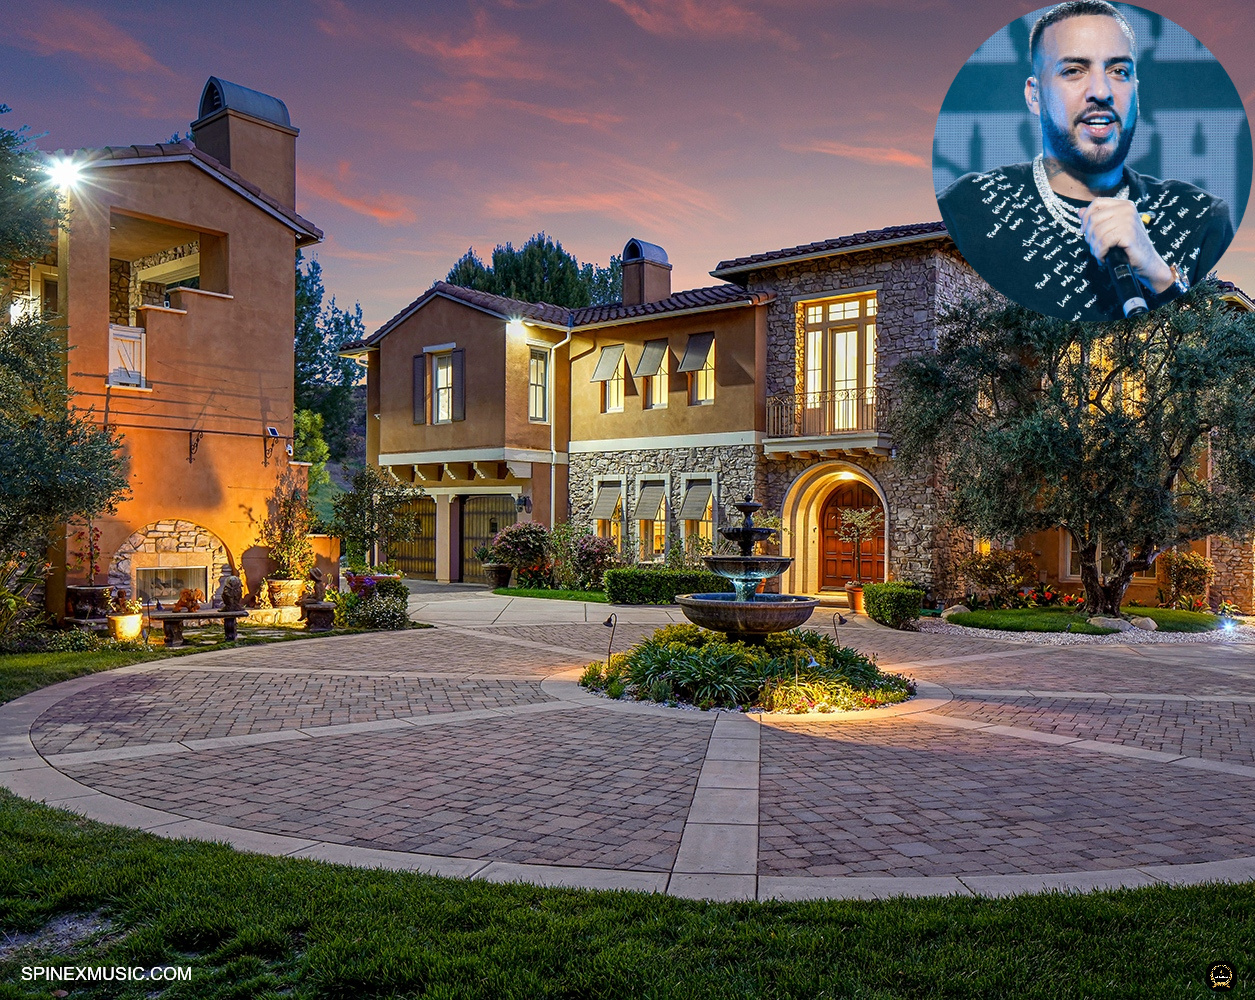 French Montana's Mansion Is Up For Sale